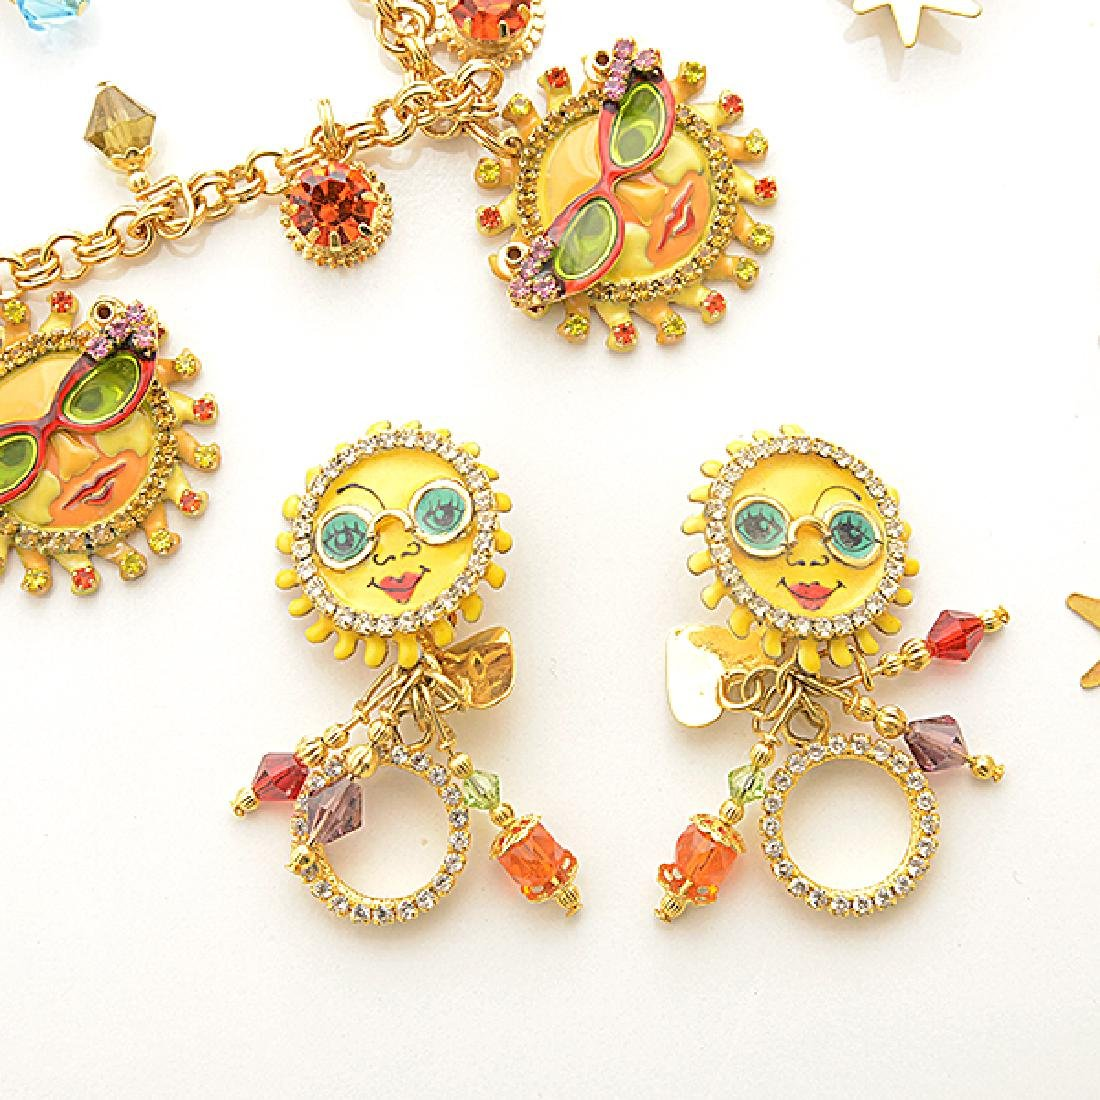 Lunch at the Ritz Couture Costume Sun Theme Jewelry - 2